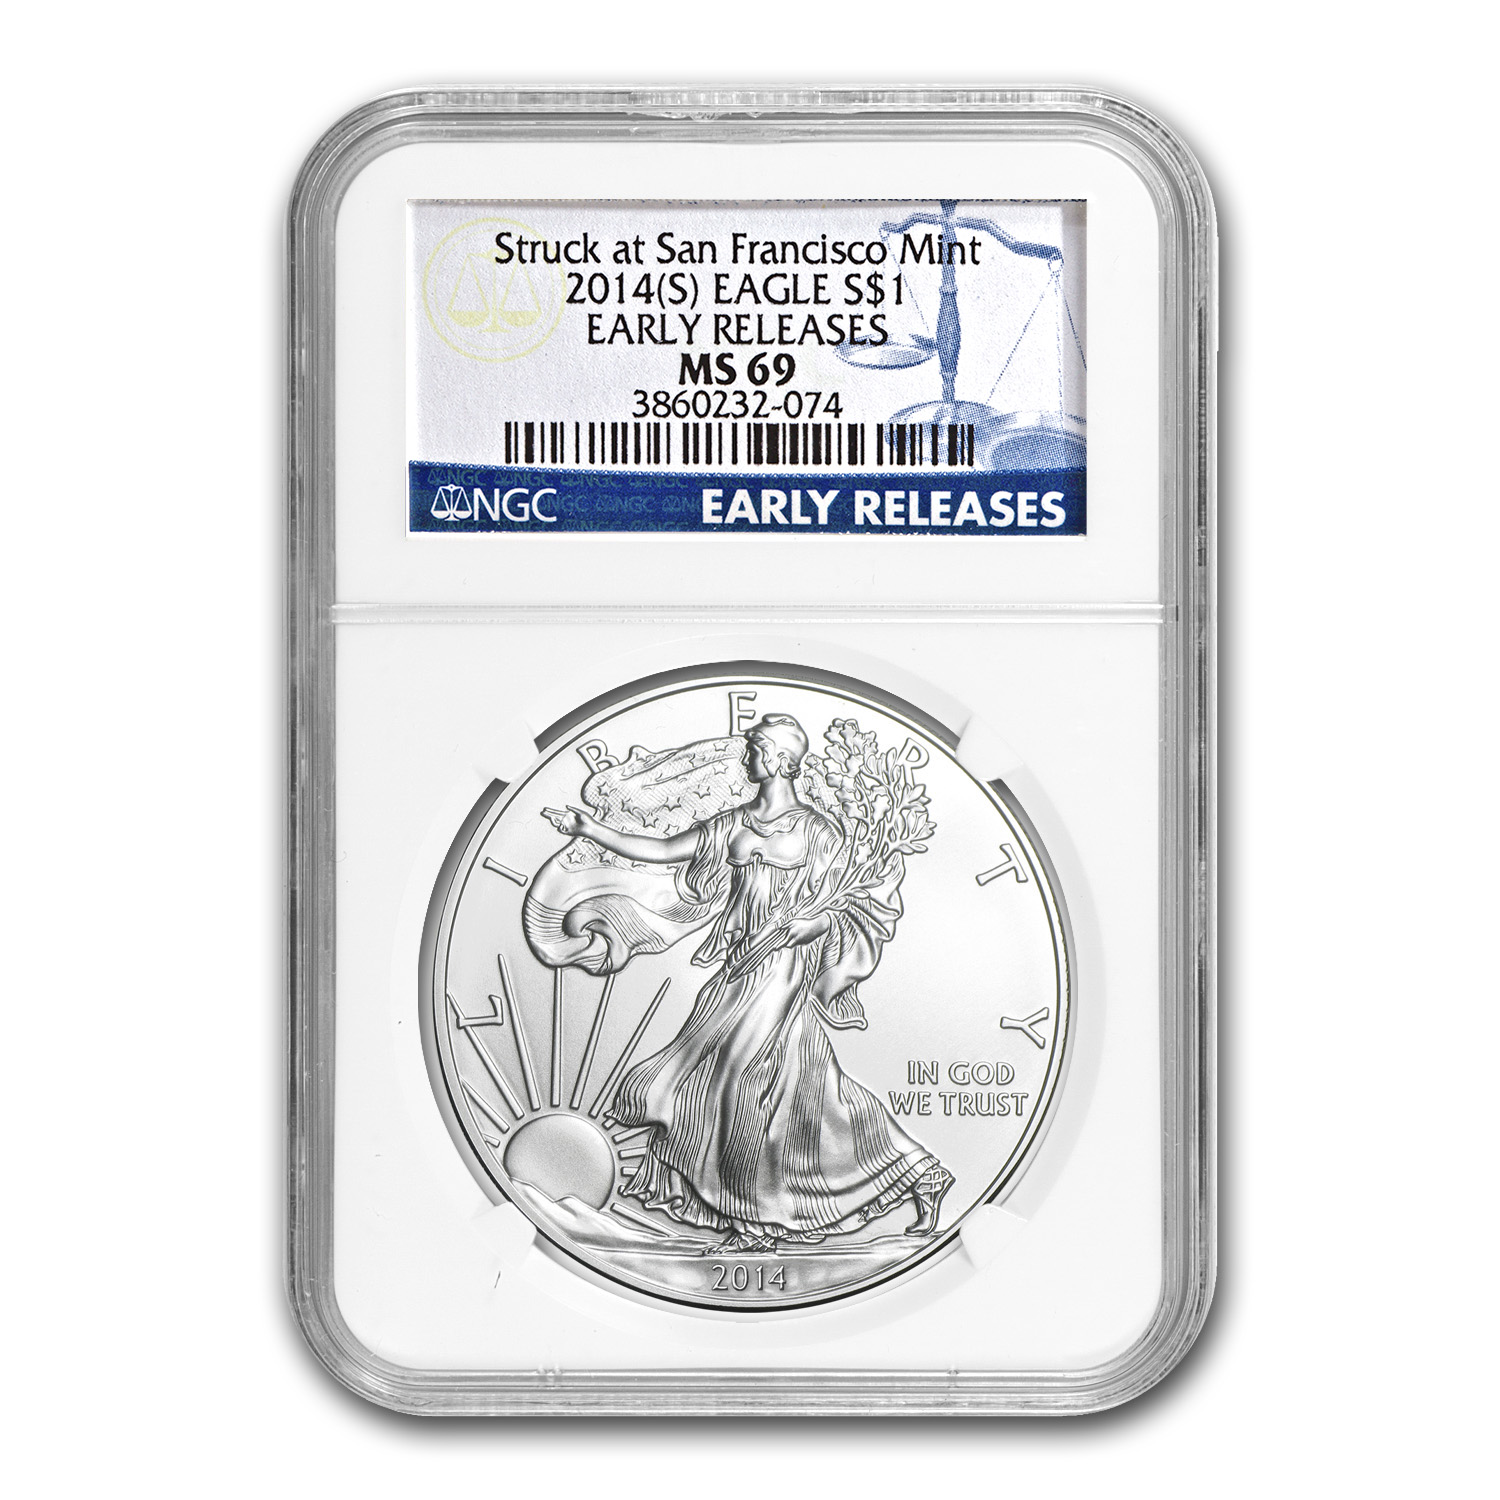 2014 (S) Silver American Eagle MS-69 NGC (Early Releases)